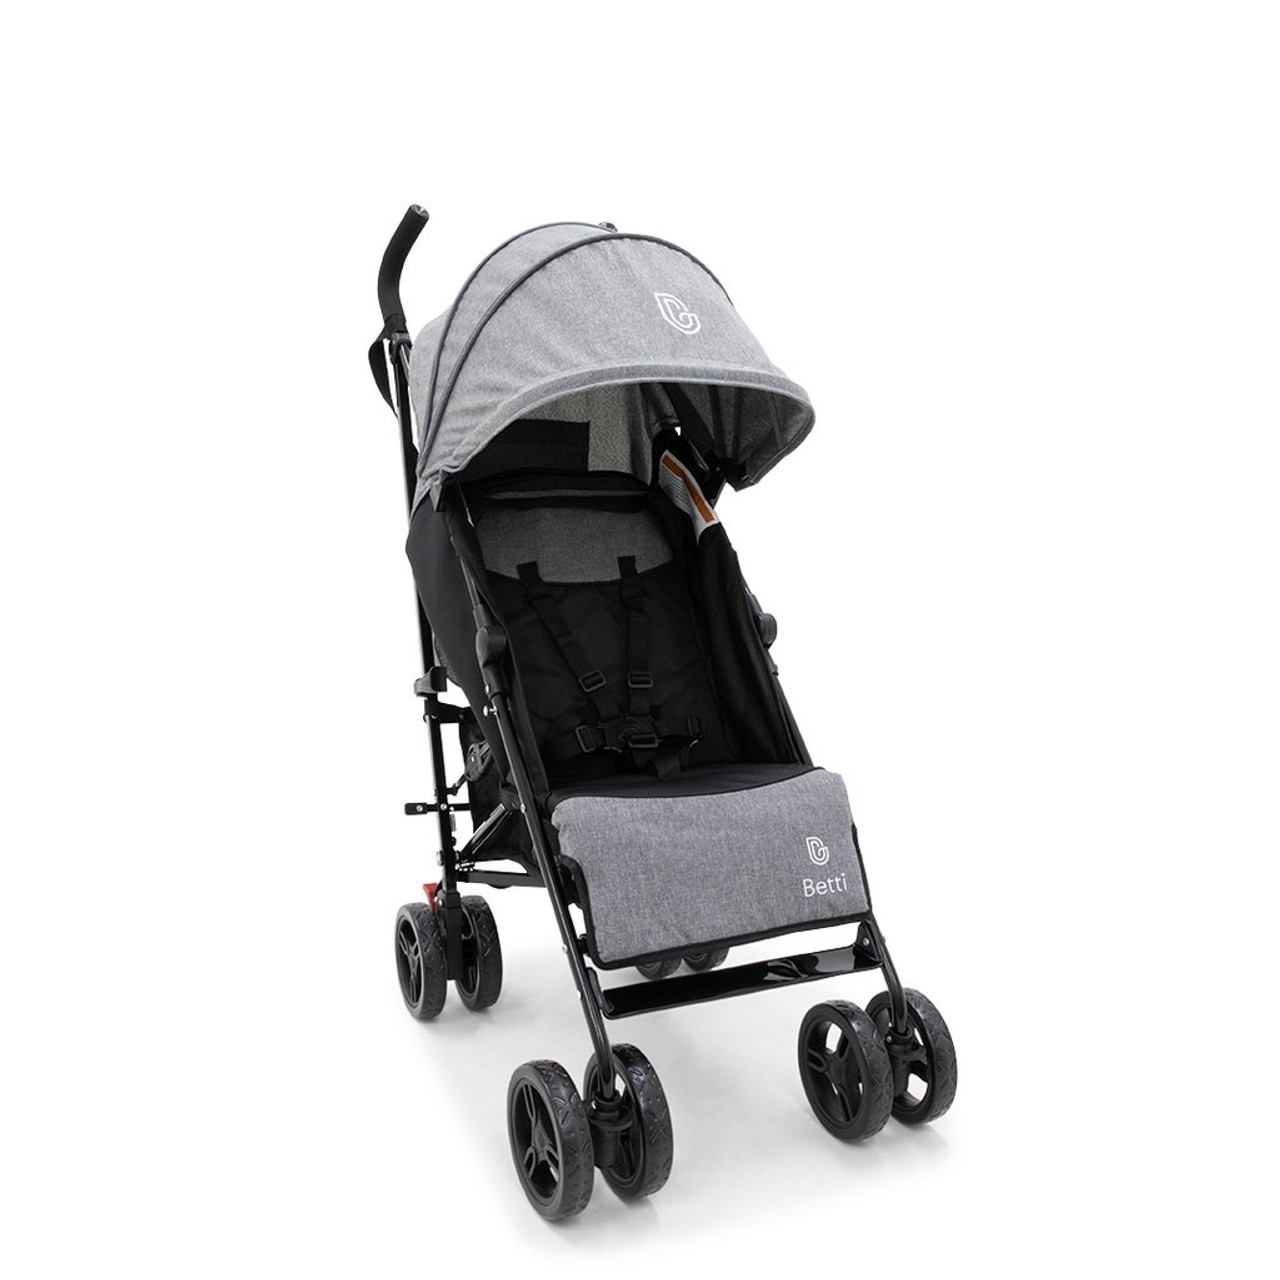 Betti Gran Umbrella Stroller SLATE at Baby Barn Discounts Betti Gran stroller is practical, compact and lightweight, this is the perfect stroller to take baby.